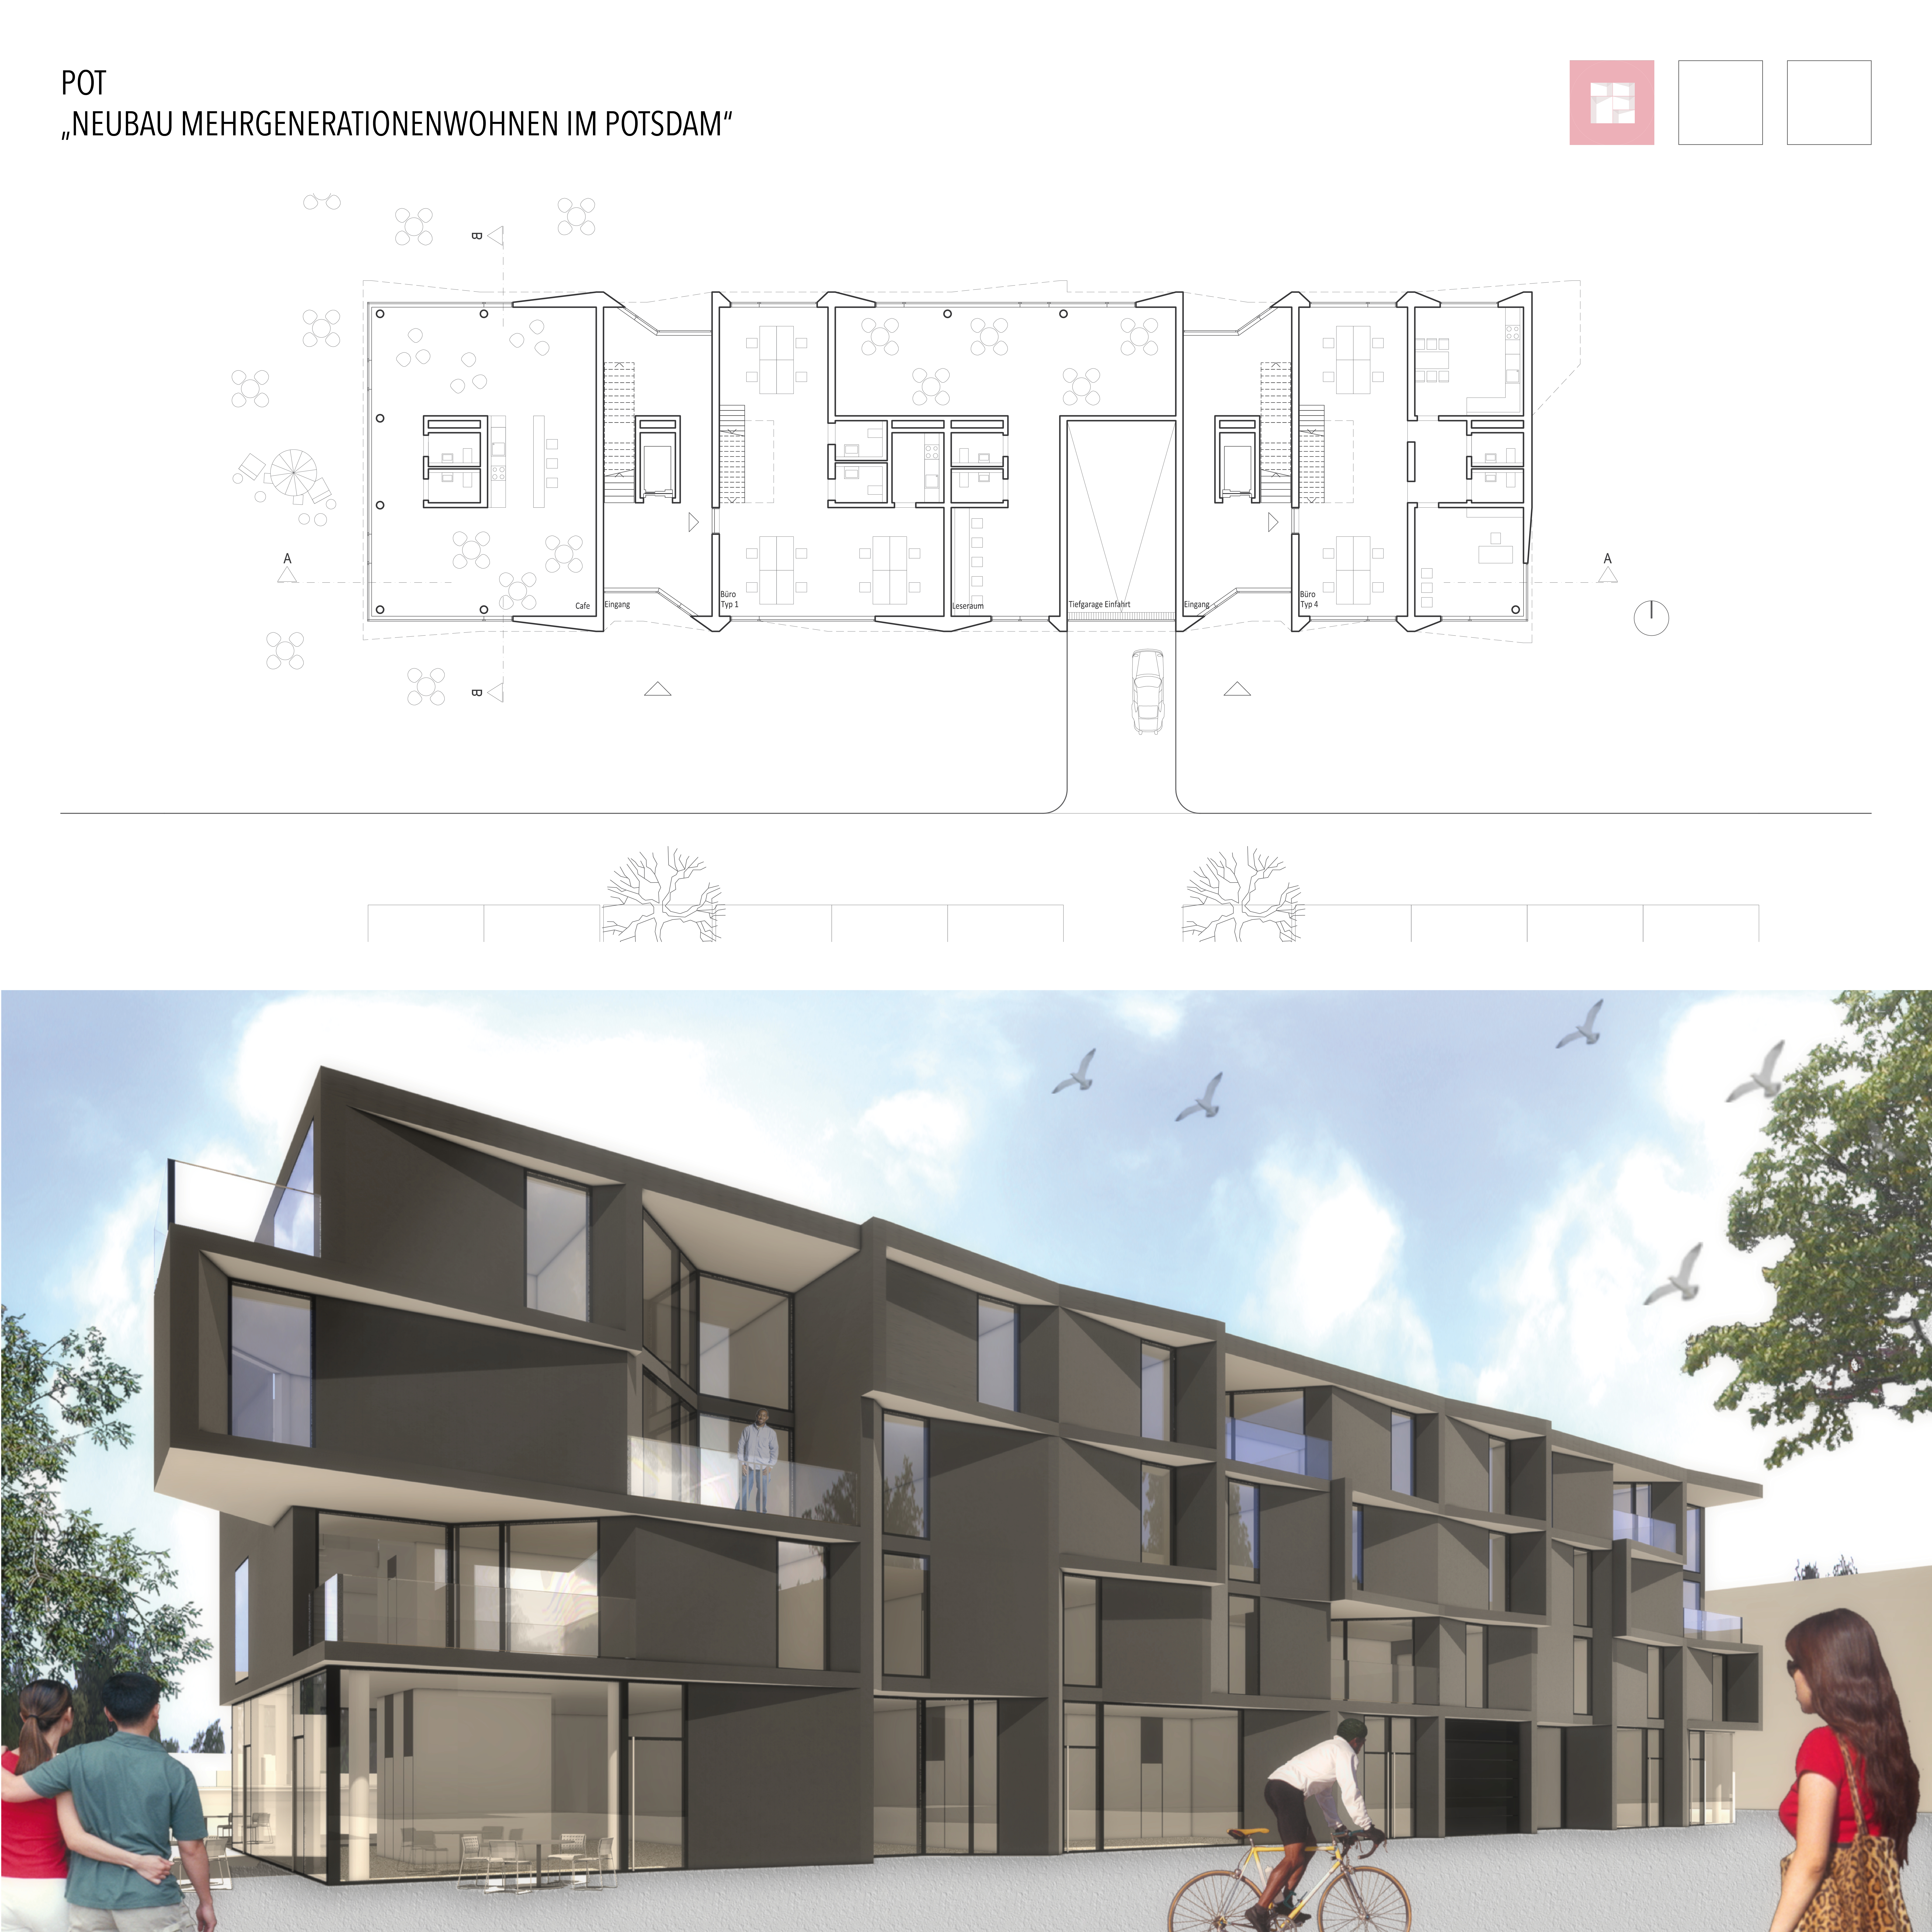 Multigeneration Living / BAUWEISE Architektur